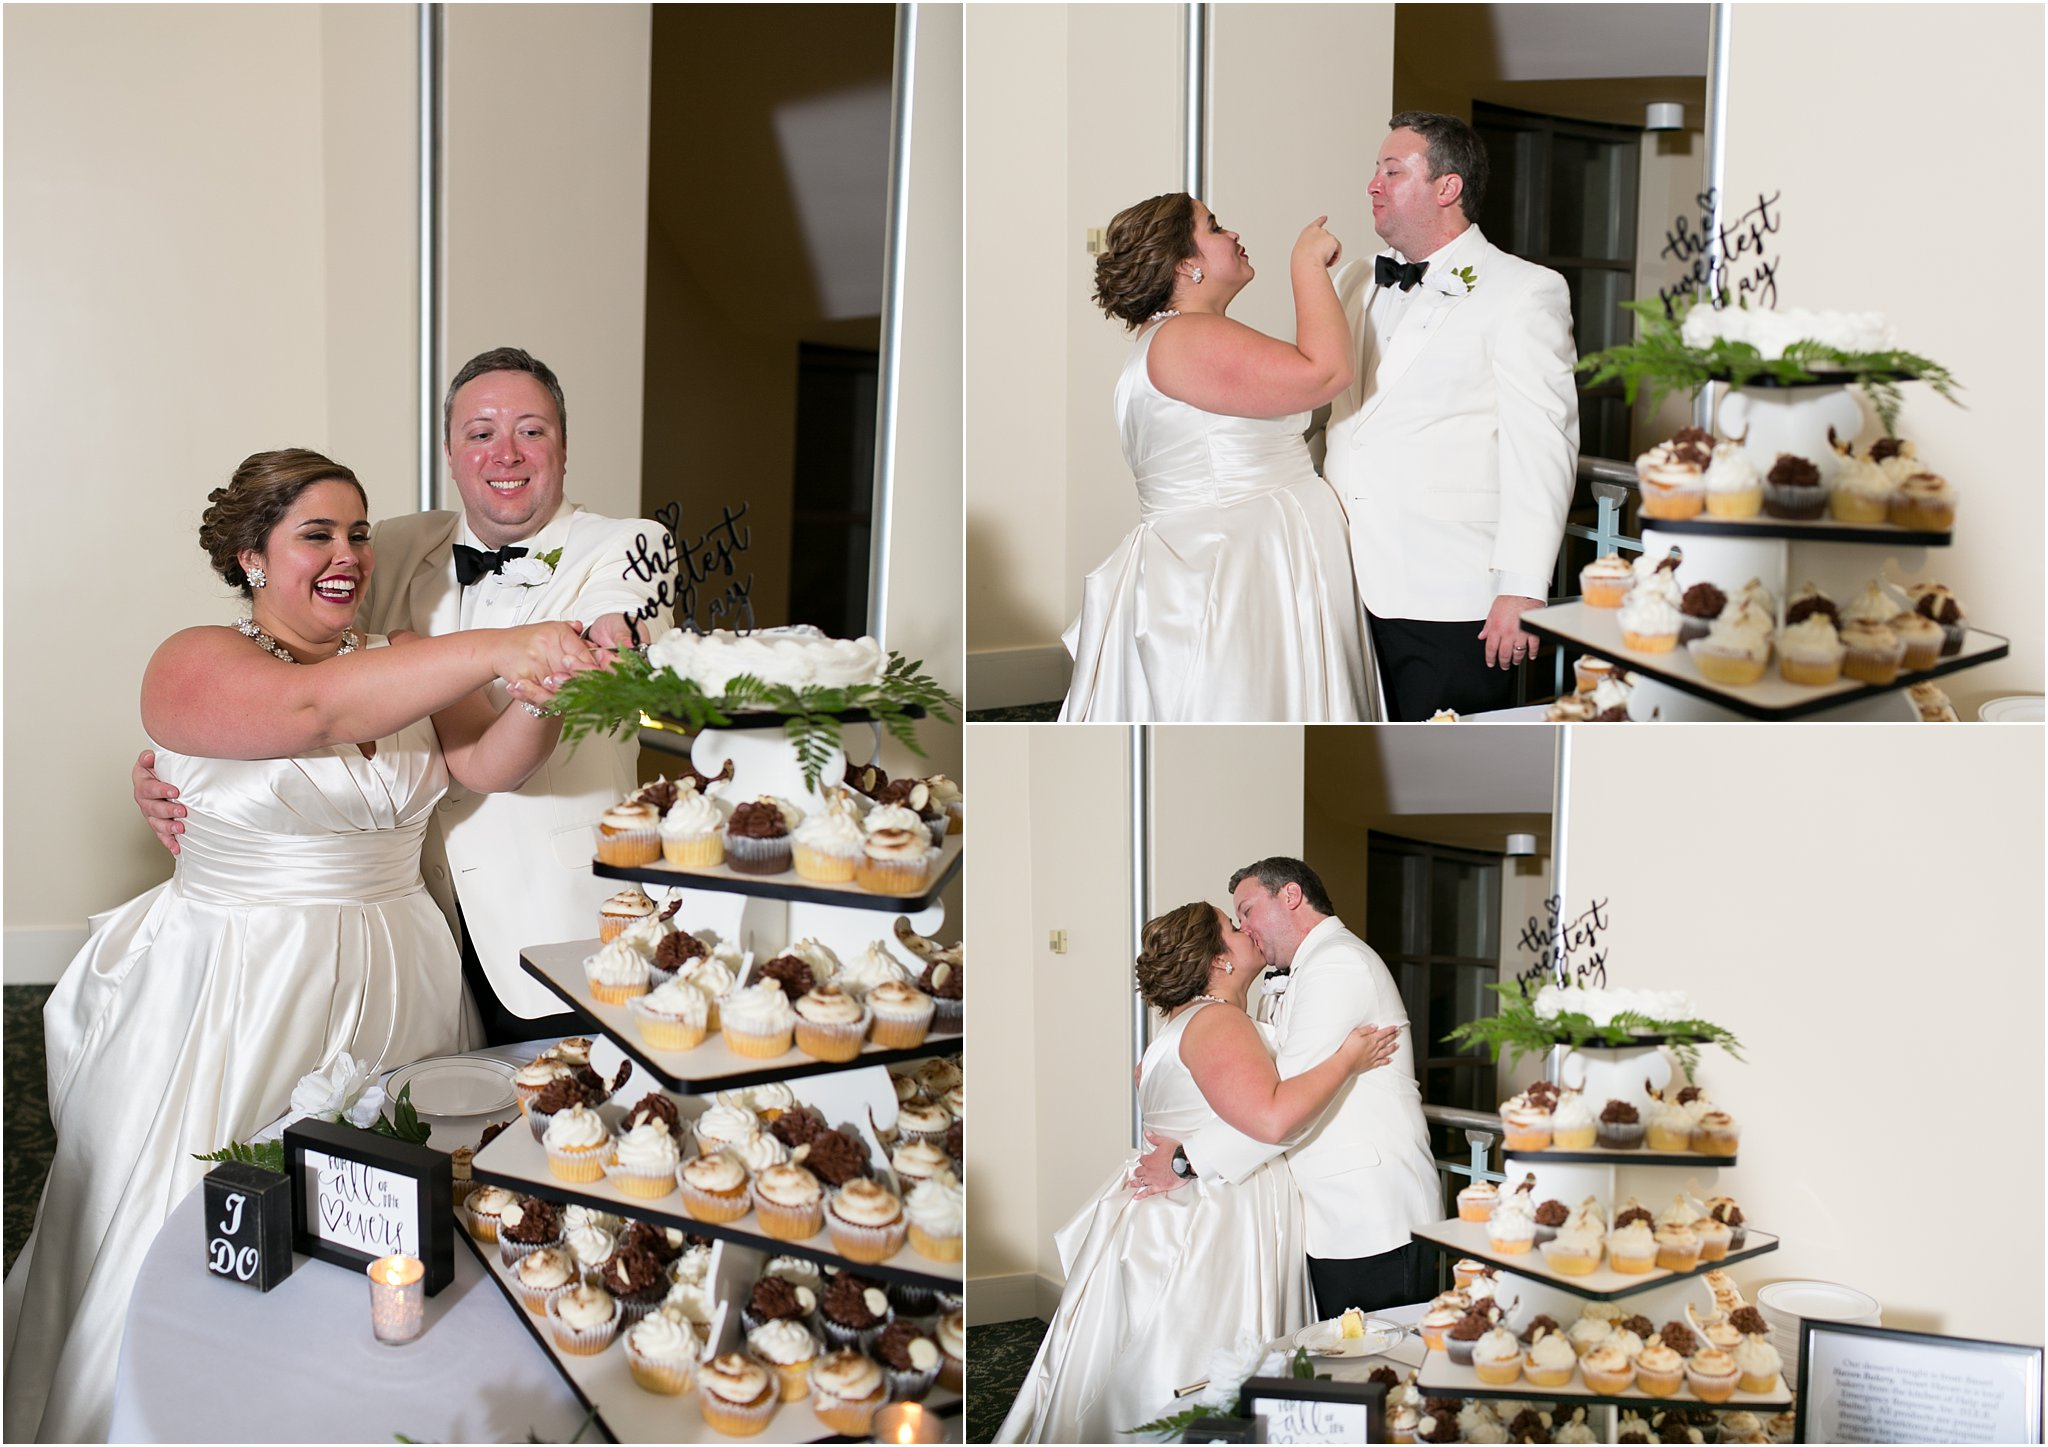 va_jessica_ryan_photography_virginia_wedding_norfolk_harrison_opera_house_norfolk_arts_district_portraits_3860